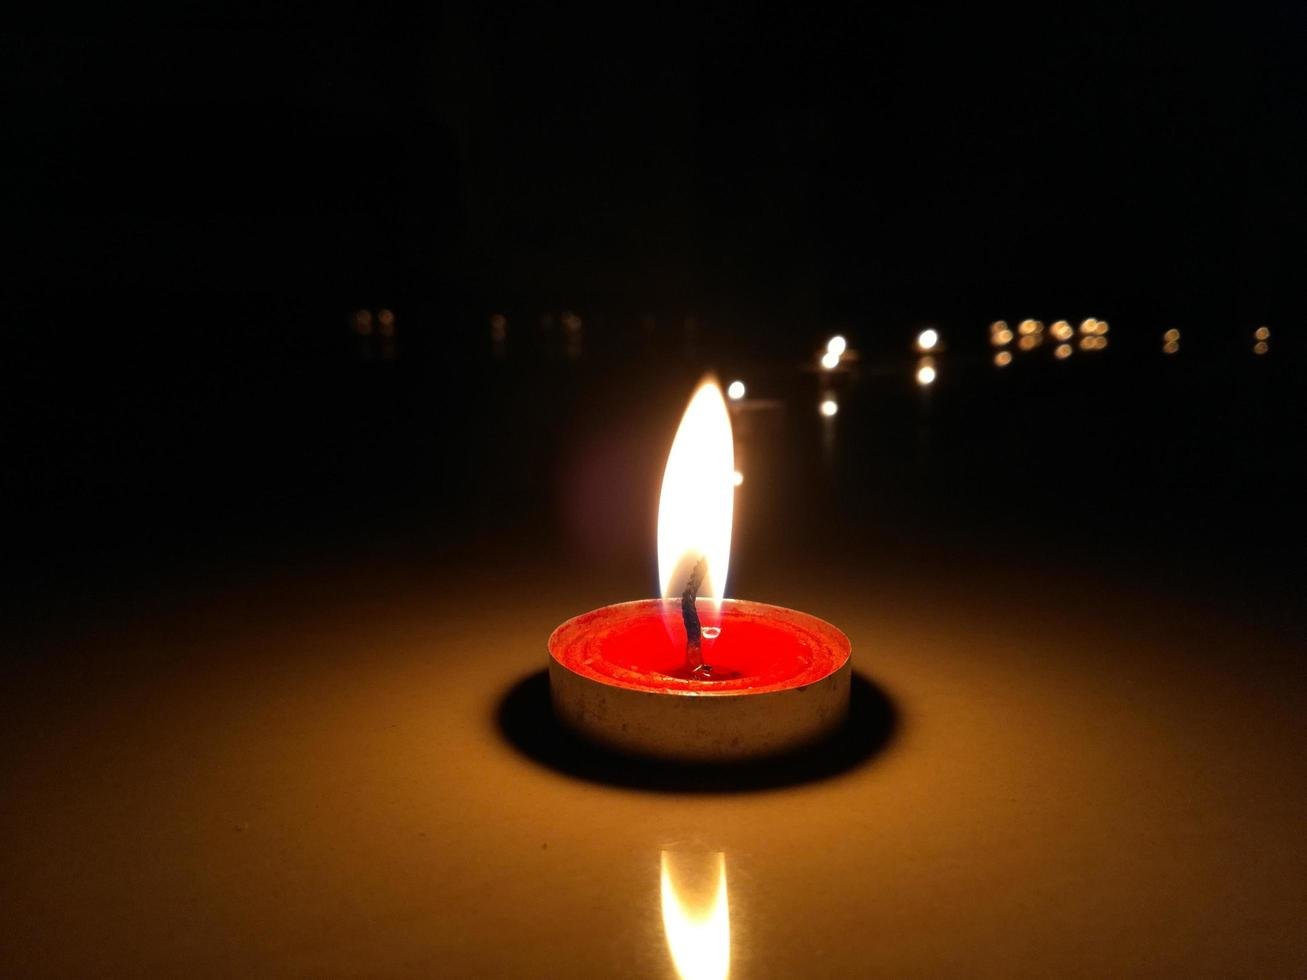 Small red candle photo